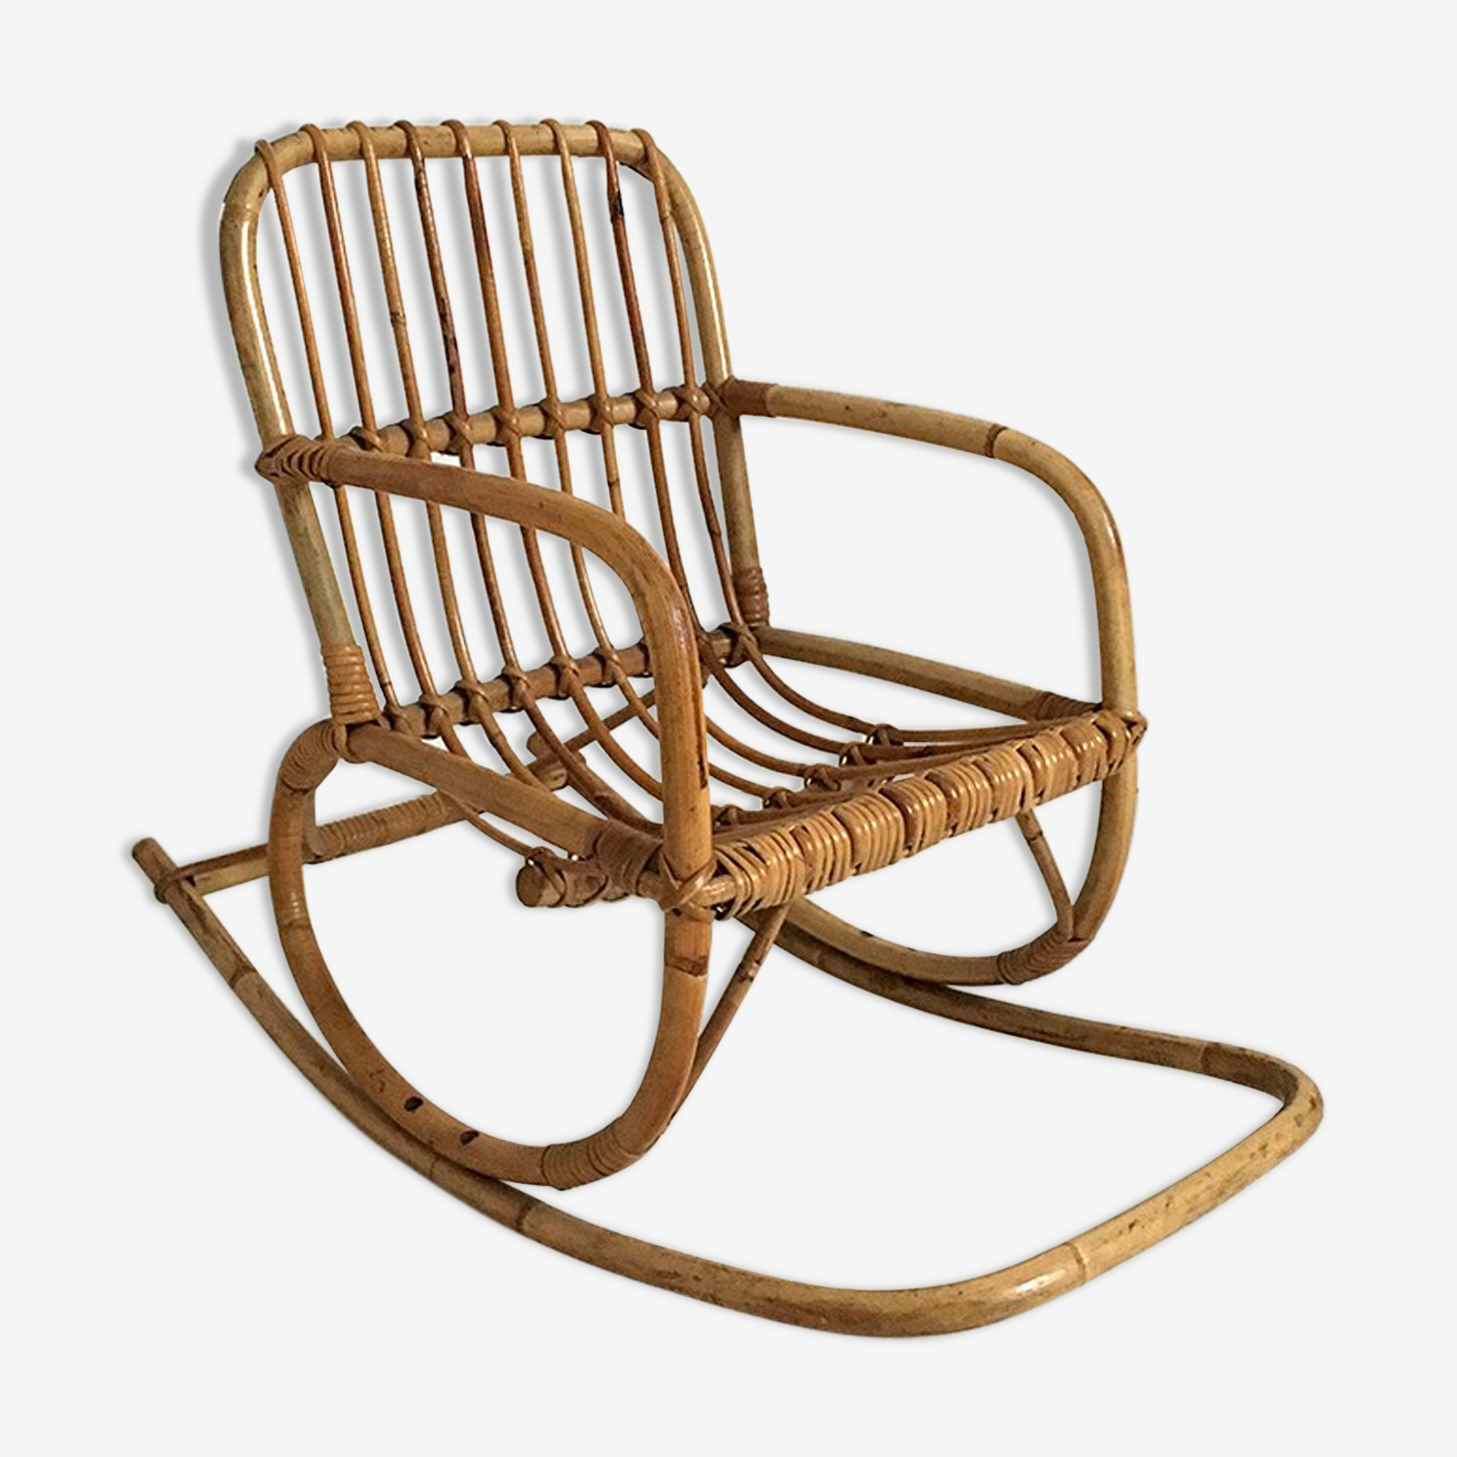 Rocking chair enfant en rotin vintage 60